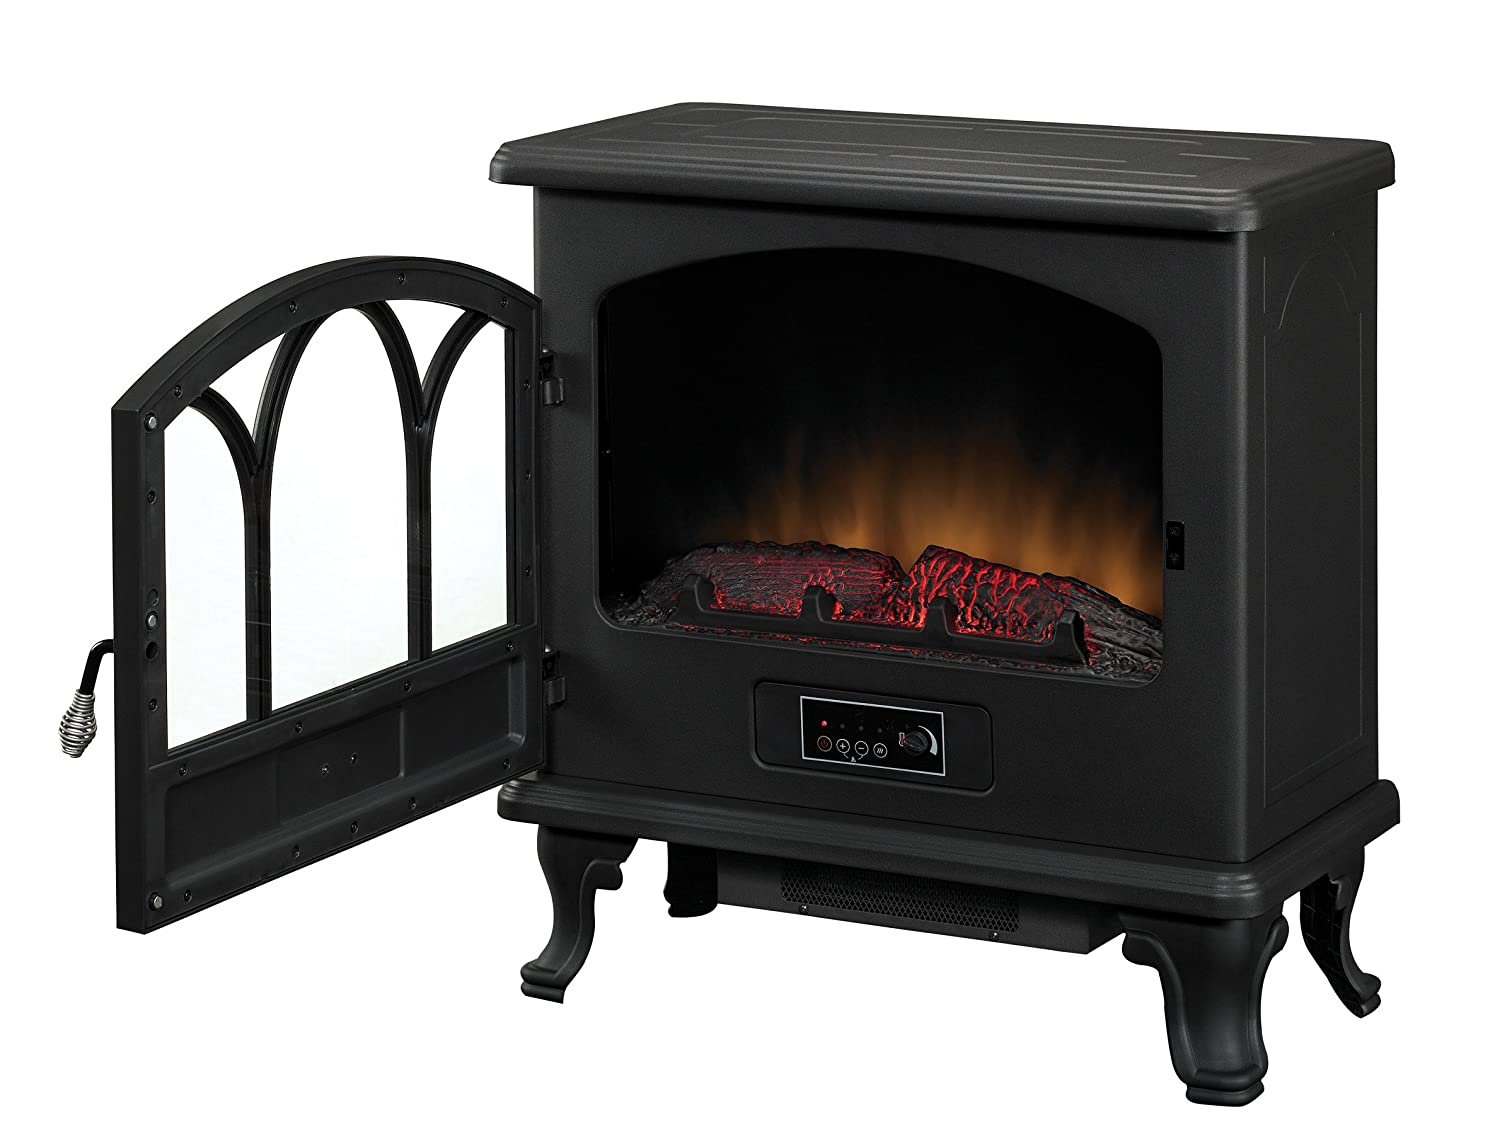 Portable Battery Heater Amazoncom Duraflame Dfs 750 1 Pendleton Electric Stove Heater